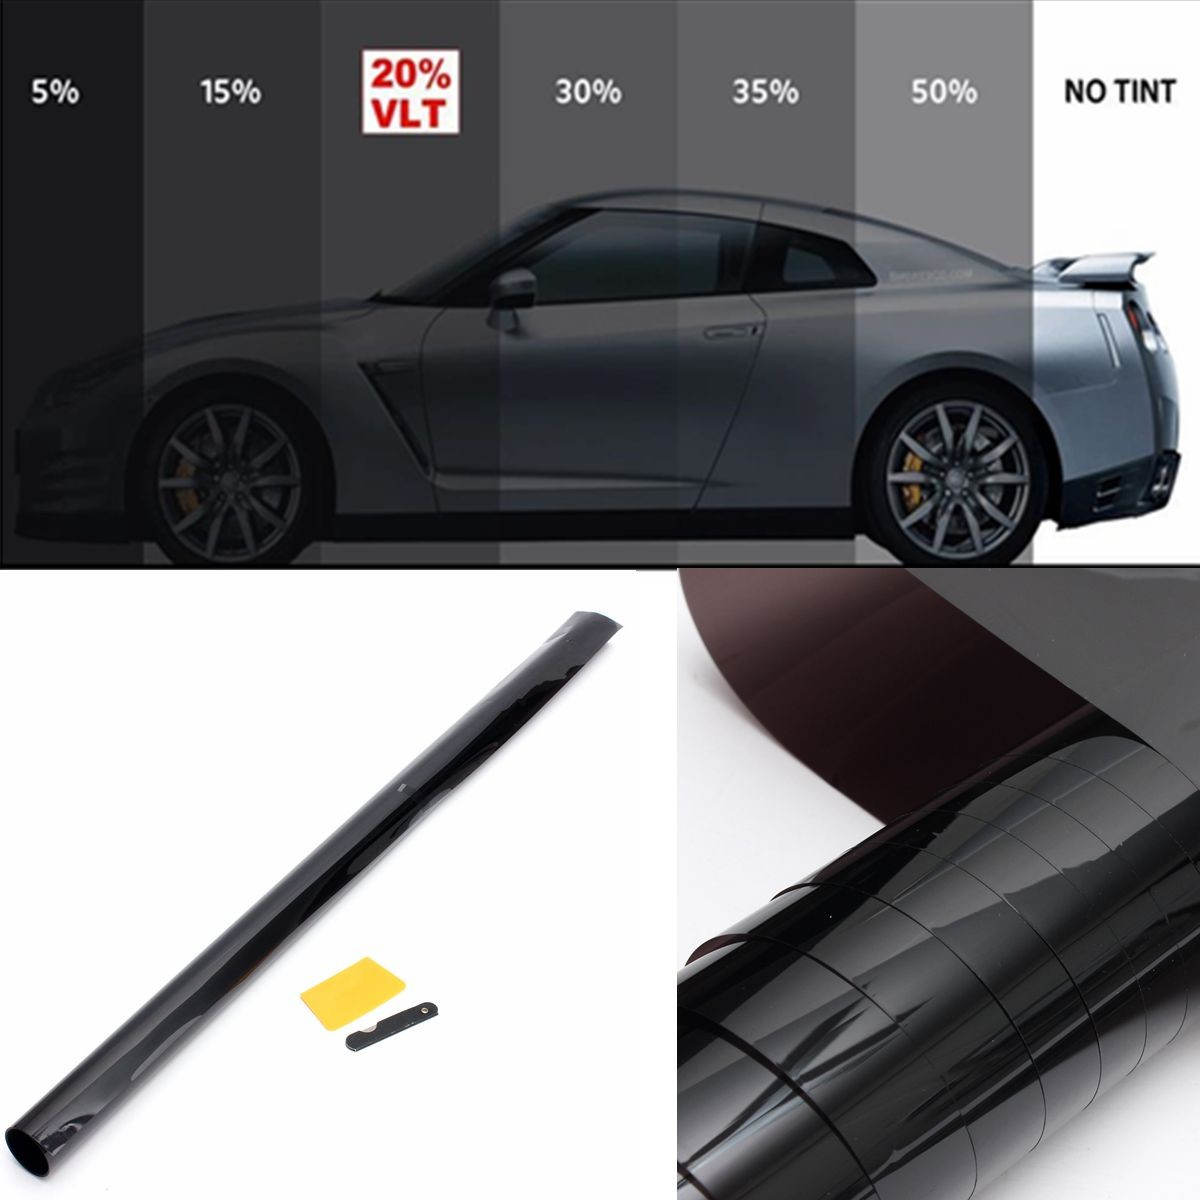 3m x 75cm 20% Car Auto Van Window Tint Film OneWay Mirror Tinting Foil